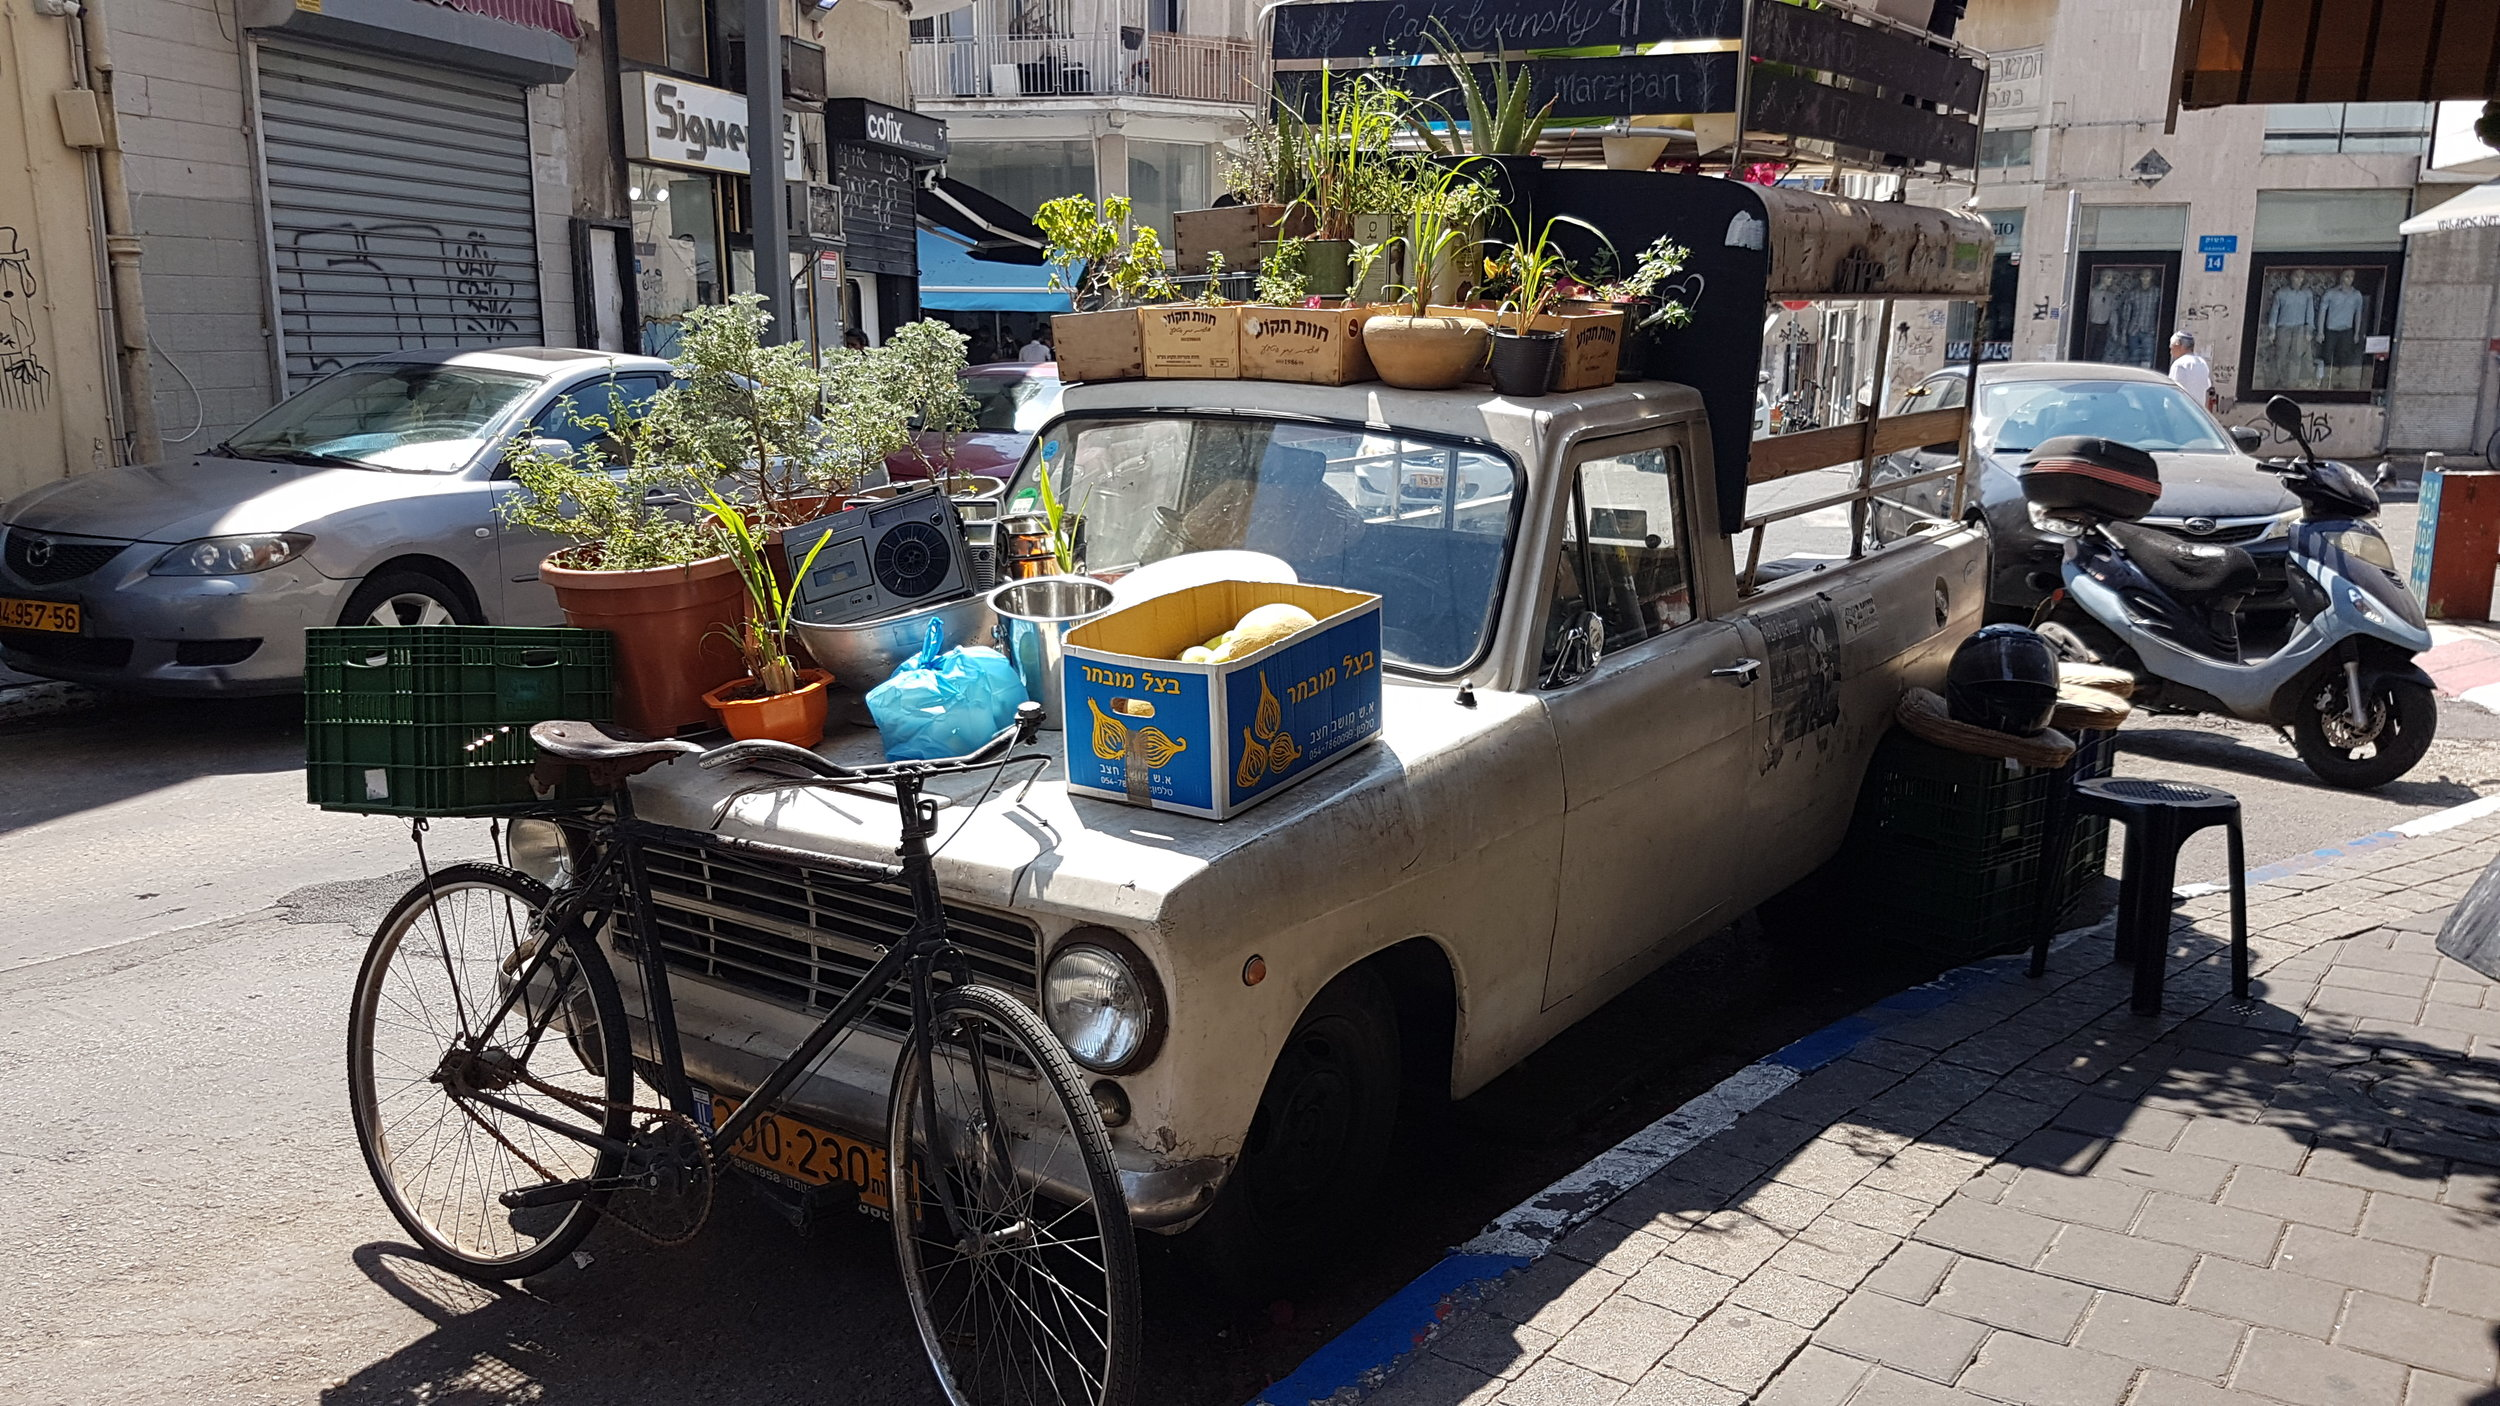 Only in Southern Tel Aviv! A cafe on wheels..